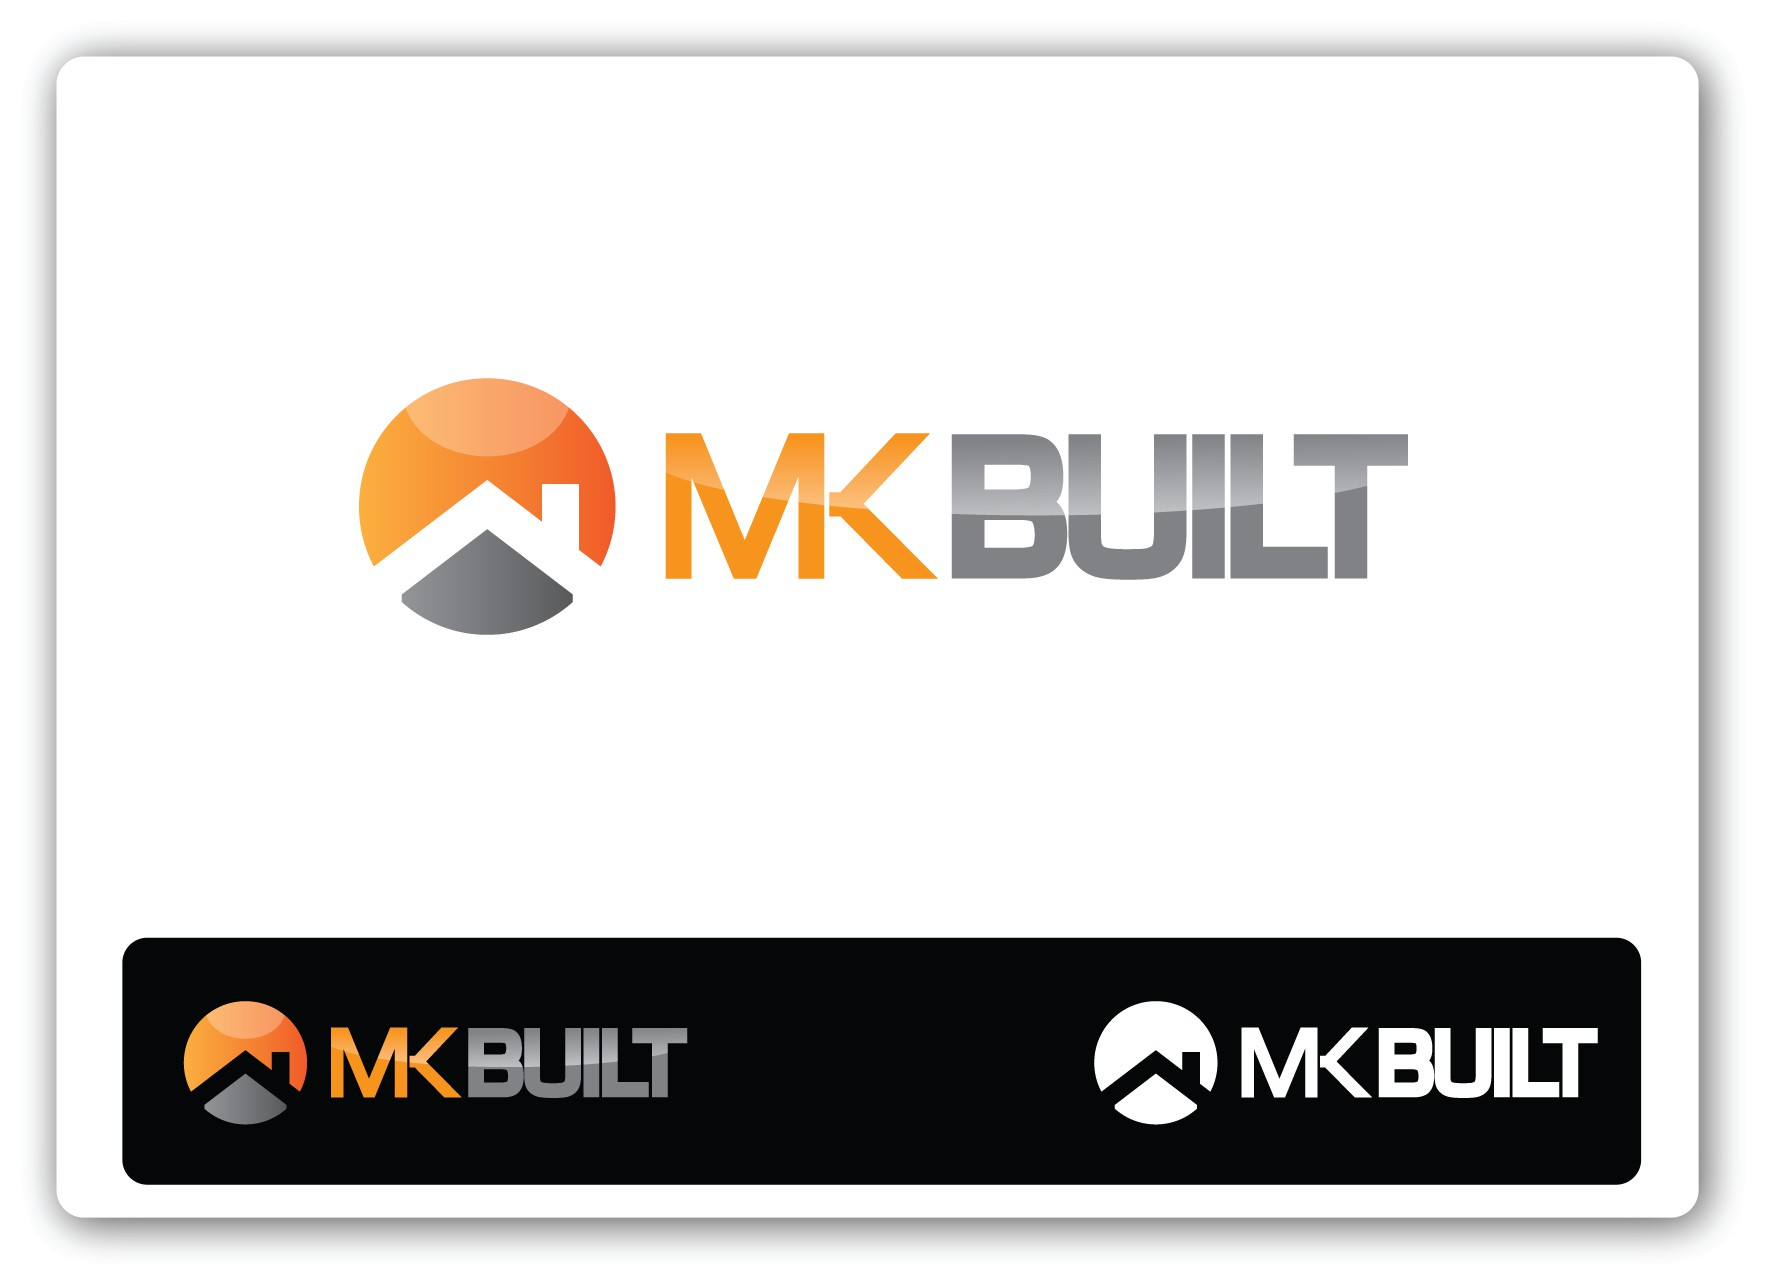 Help MK Built with a new logo